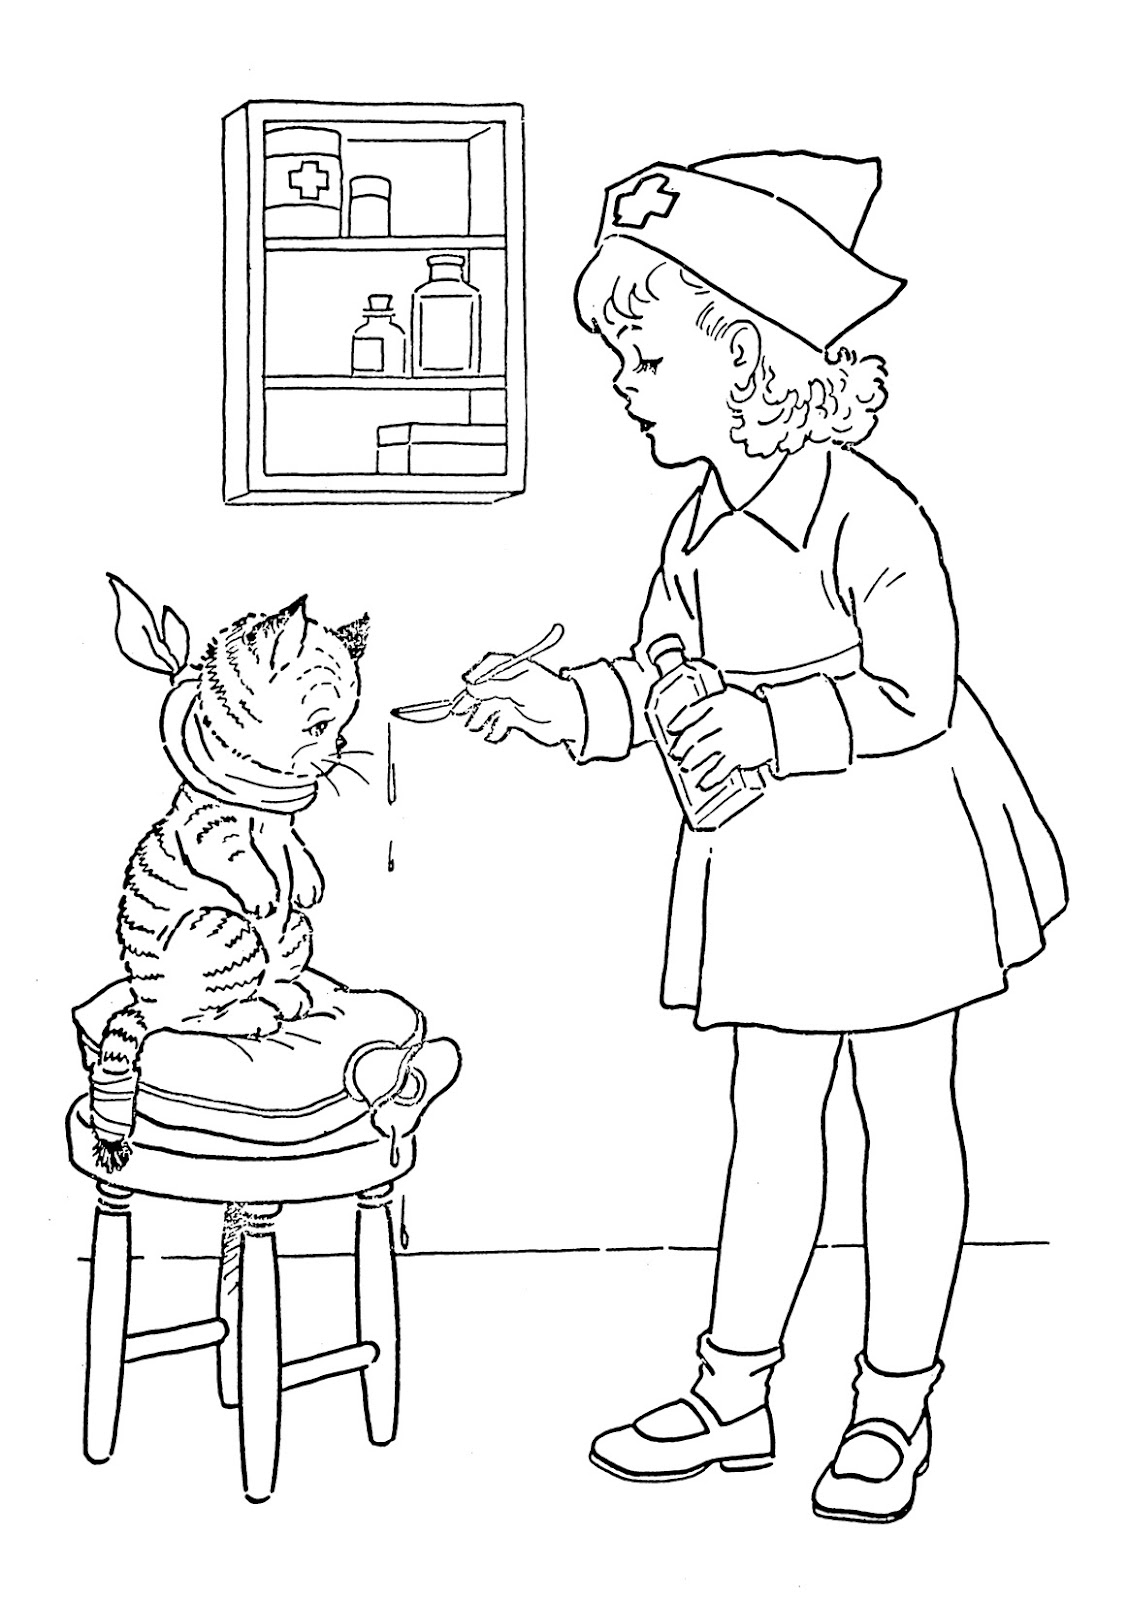 graphic art coloring pages graphic design coloring pages at getcoloringscom free graphic art coloring pages